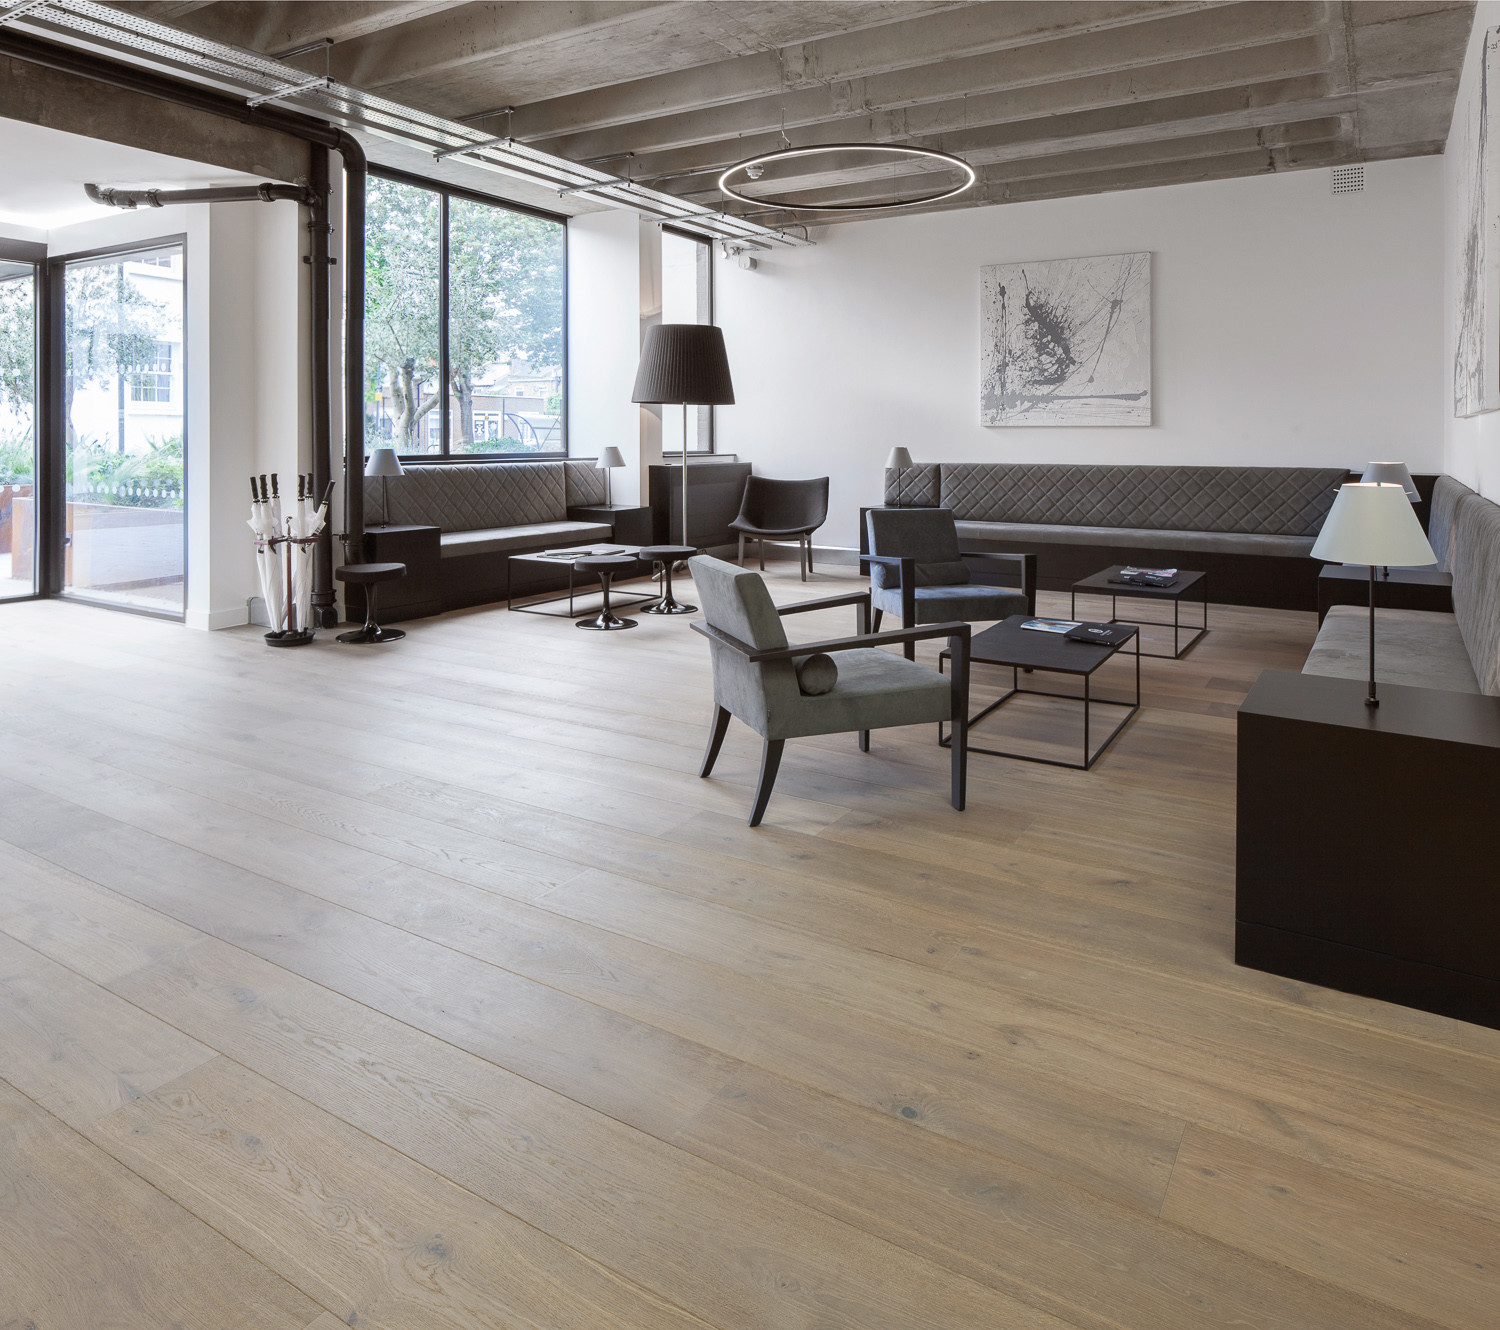 waterproof scratch proof hardwood flooring of blog archives the new reclaimed flooring companythe new regarding the report indicated that 82 of workers who were employed in places with eight or more wood surfaces had higher personal productivity mood concentration